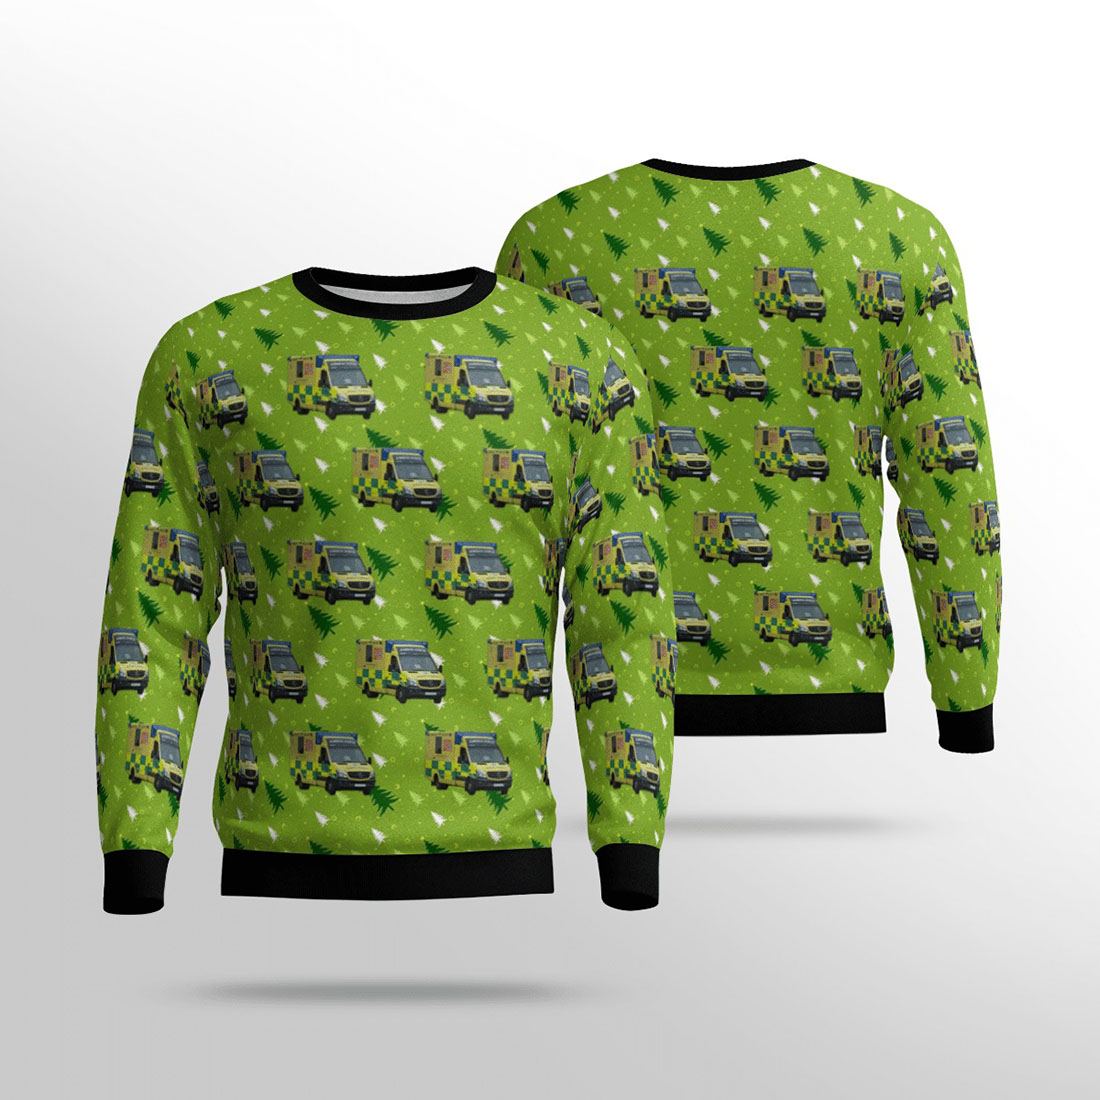 South western ambulance service nhs foundation trust (swasft) mercedes sprinter over print sweater